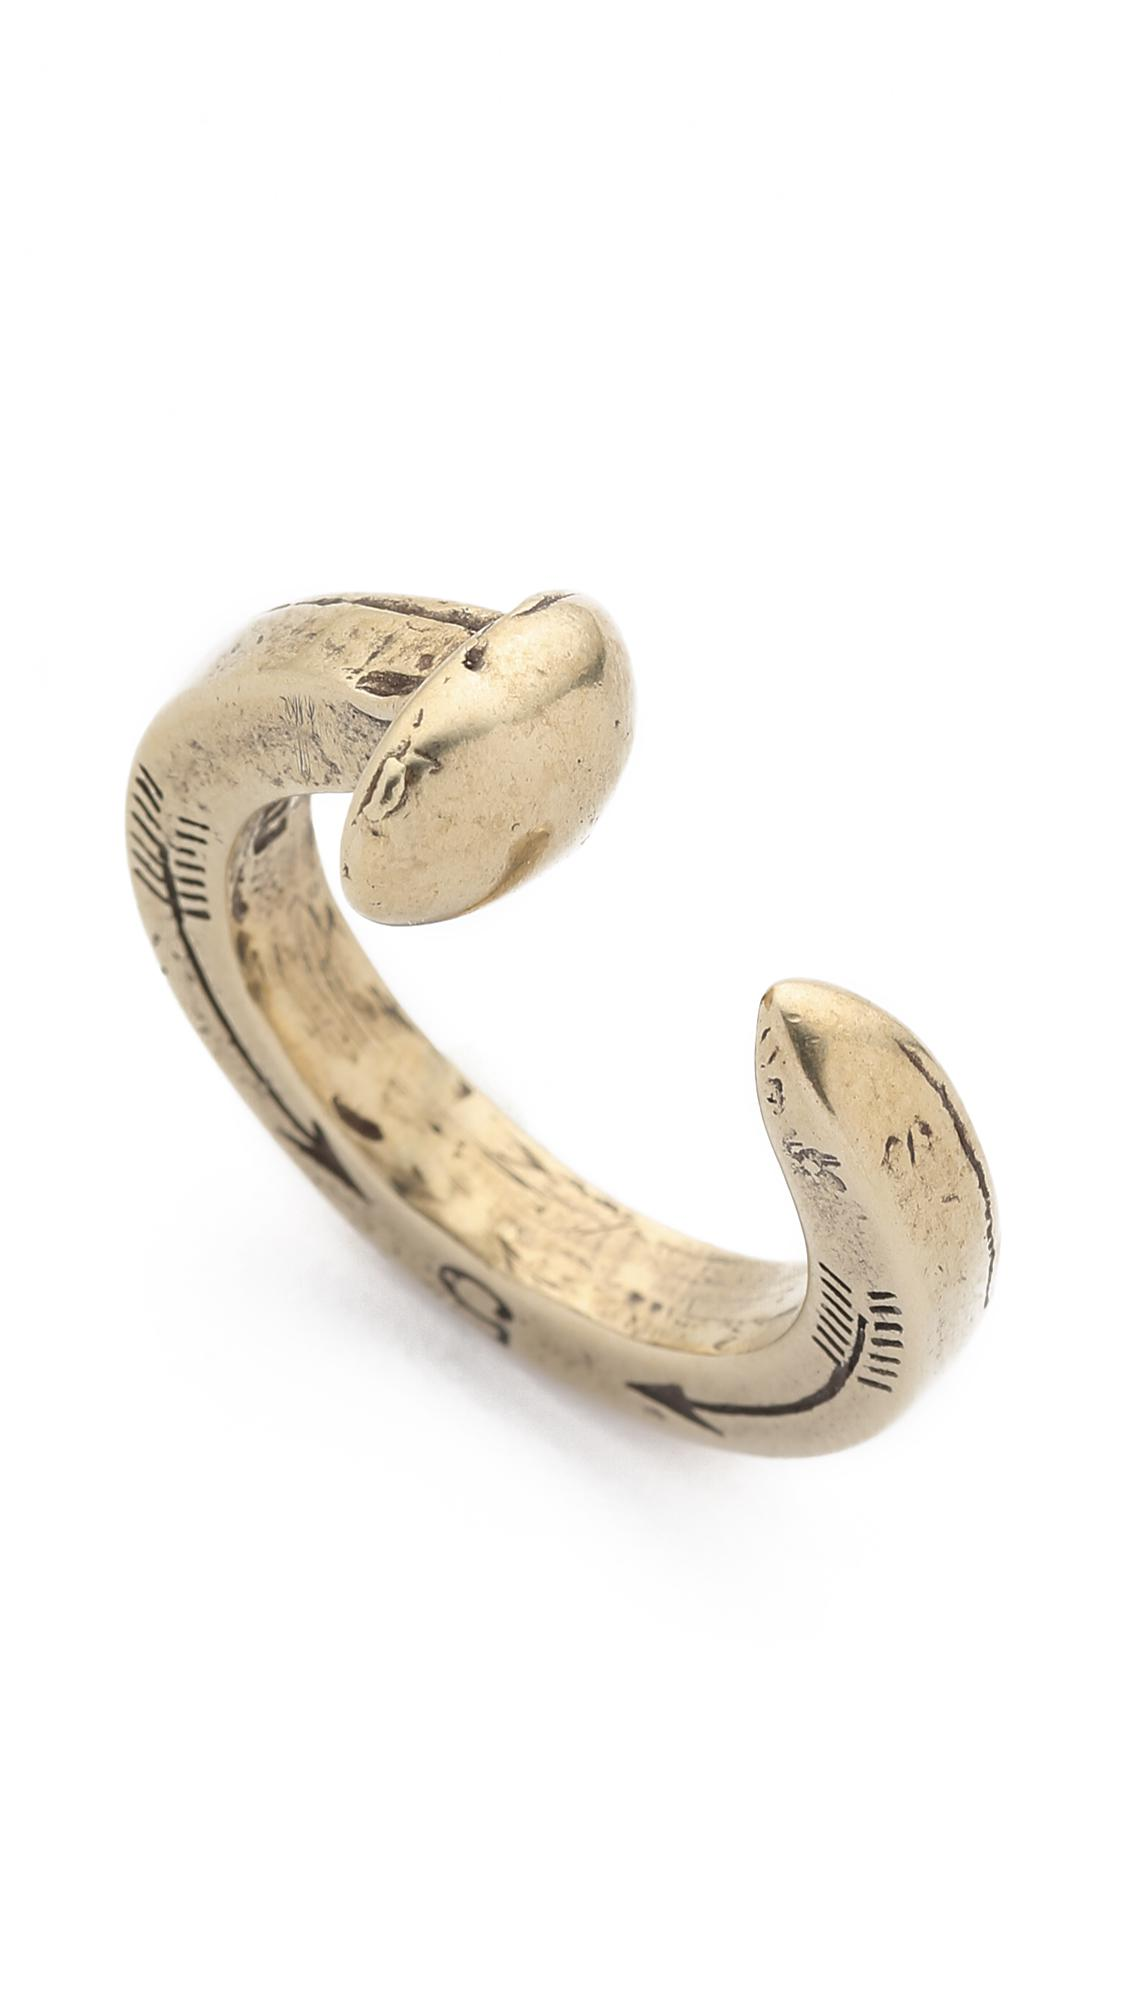 Giles & Brother Original Railroad Spike Ring in Brass (Metallic) for Men